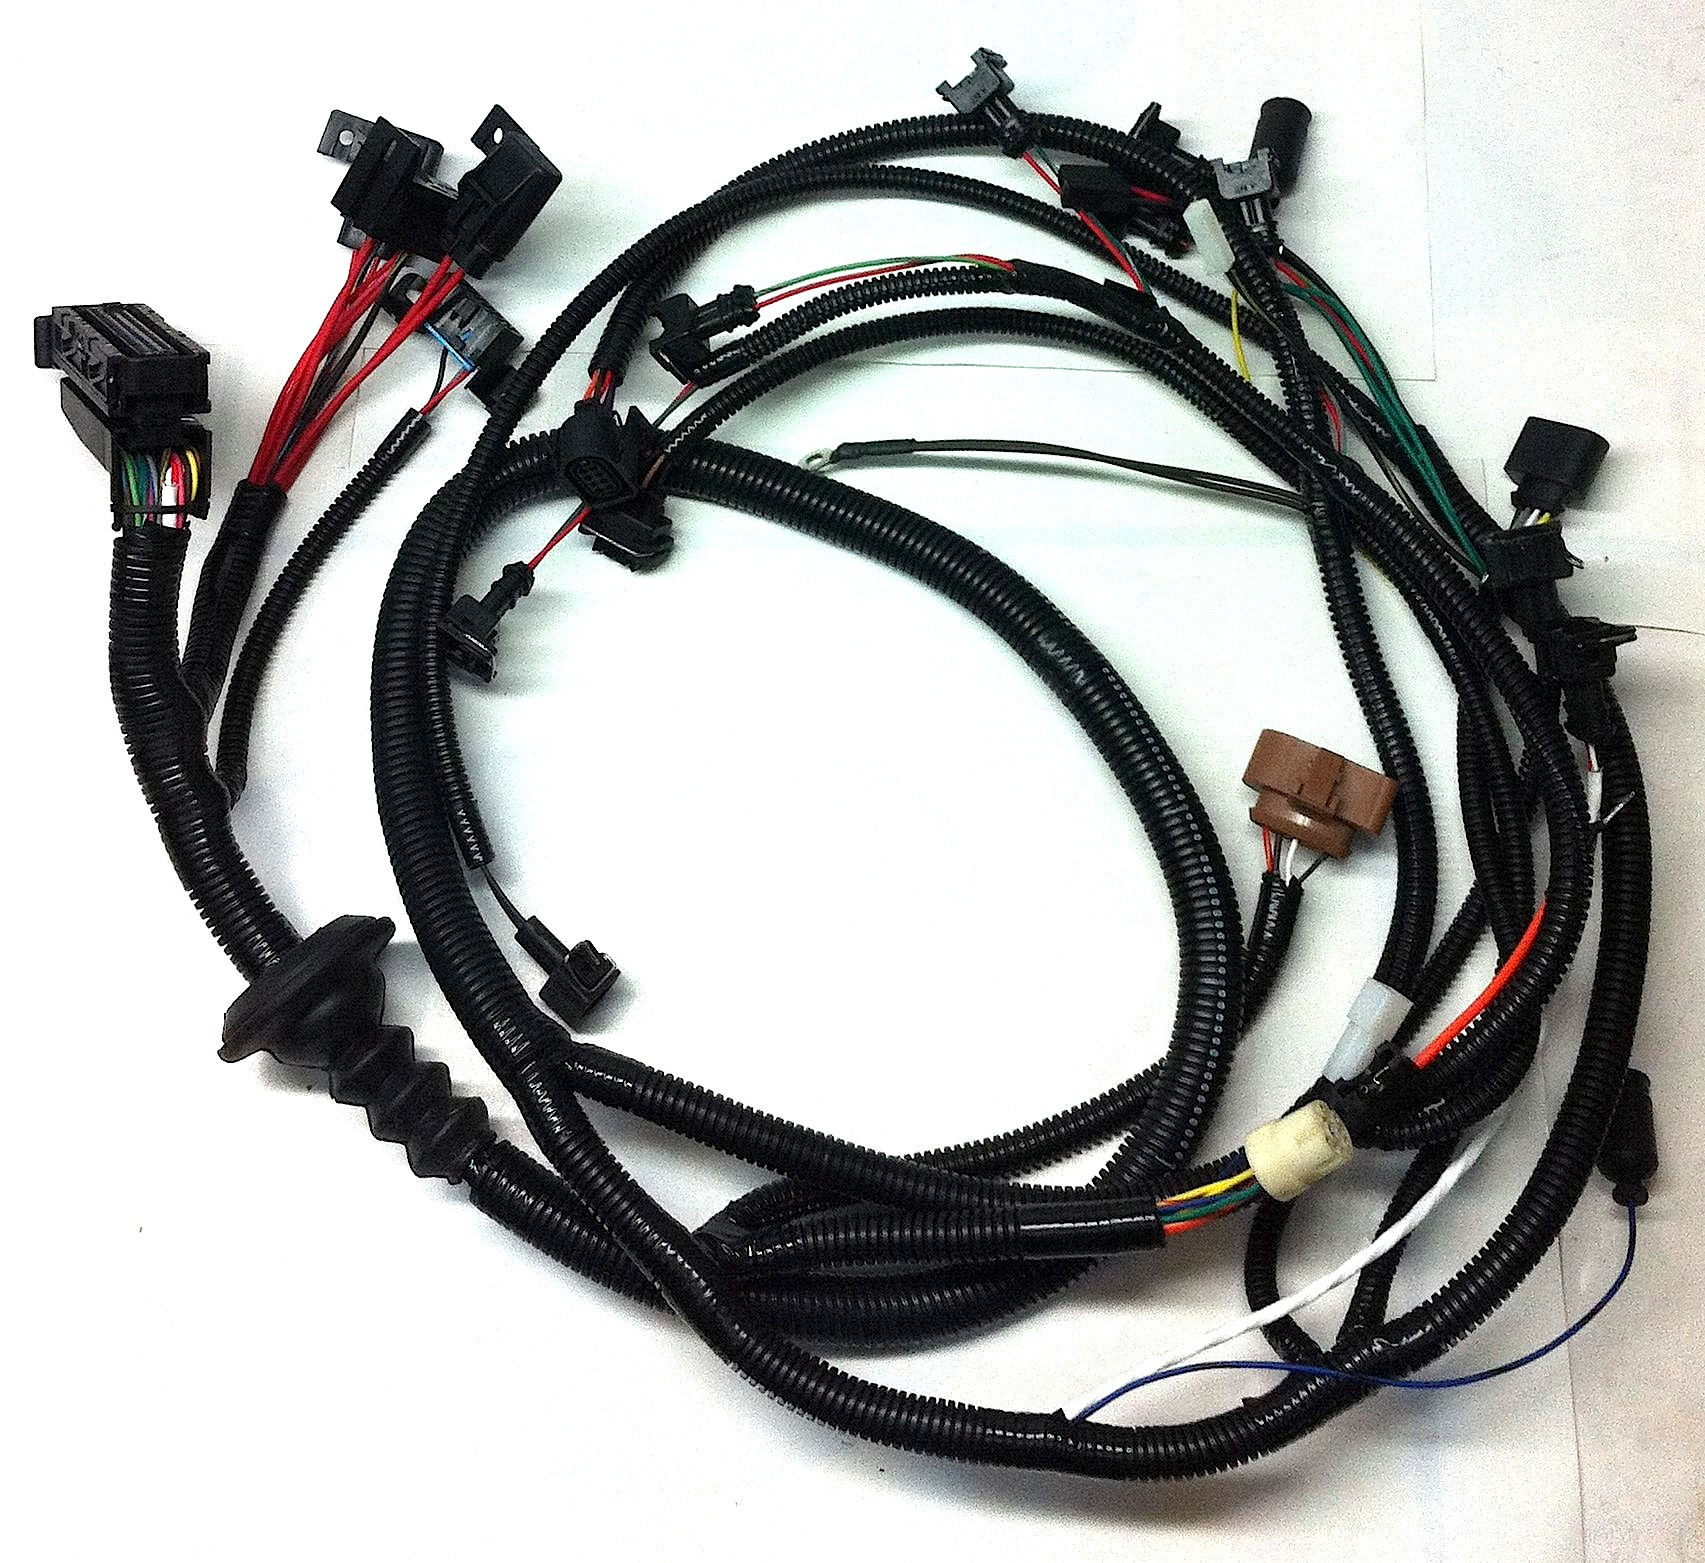 Cheap Wiring Harness Archive Of Automotive Diagram Polaris Ranger Led Lights 2lr Tiico Conversion Foreign Auto Supply Inc Rh Foreignautosupply Com